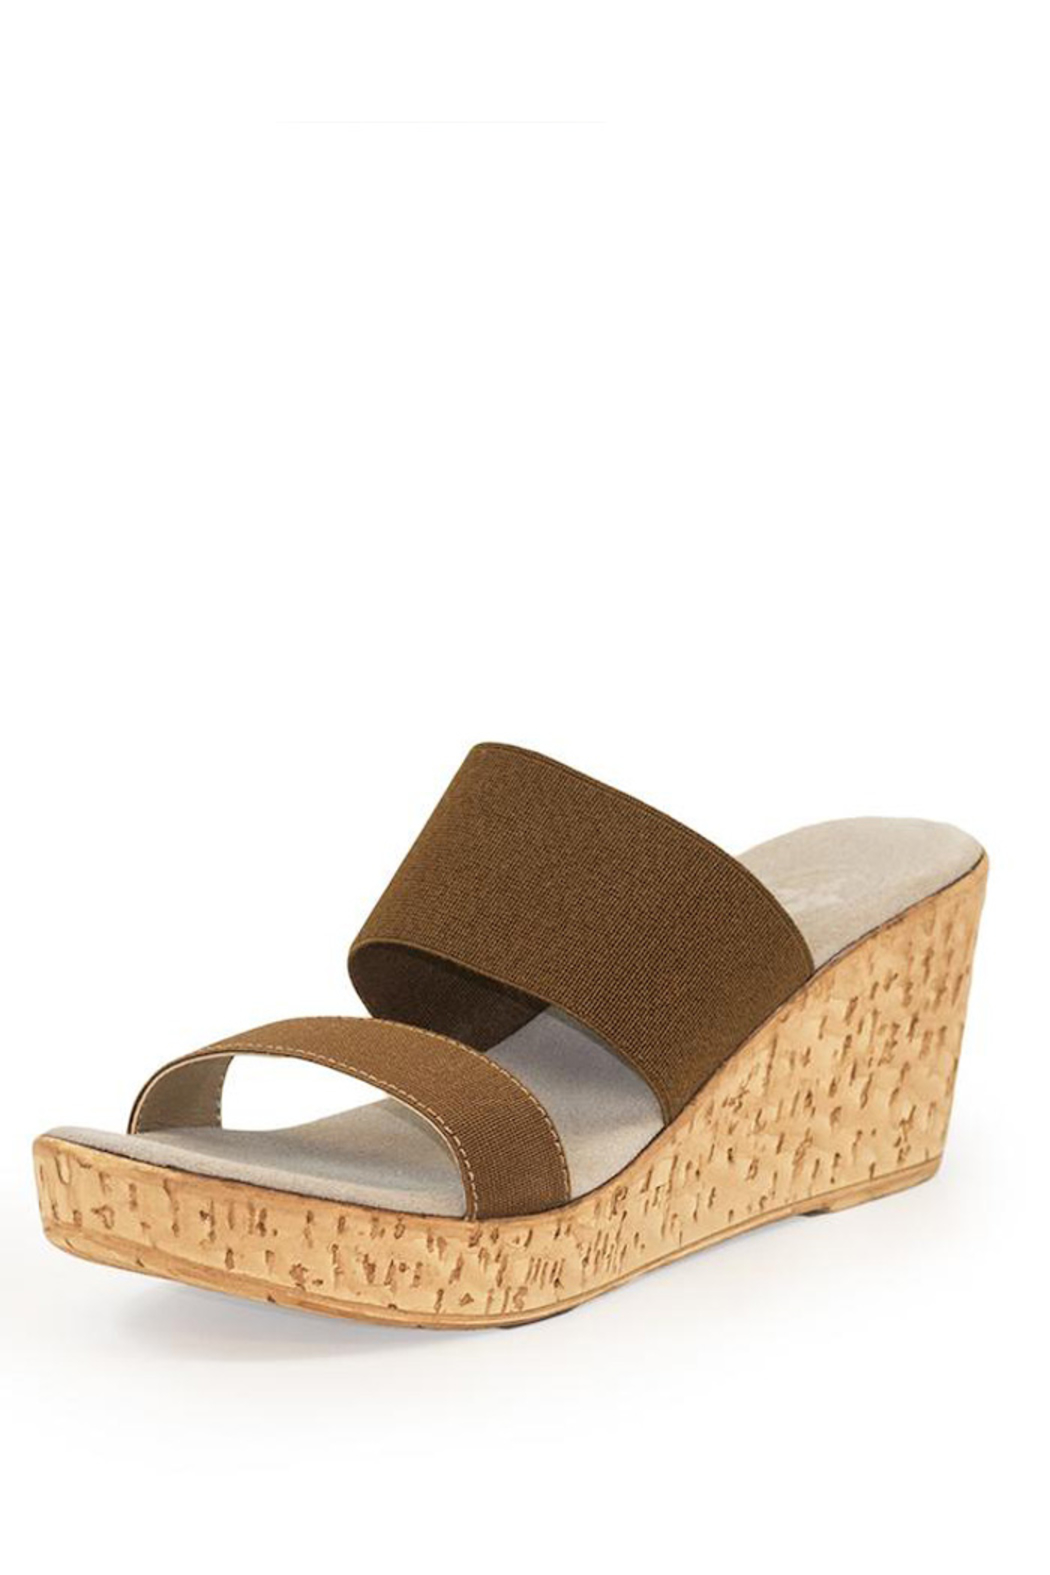 Charleston Shoe Co. LIDO WEDGE SANDAL - Main Image